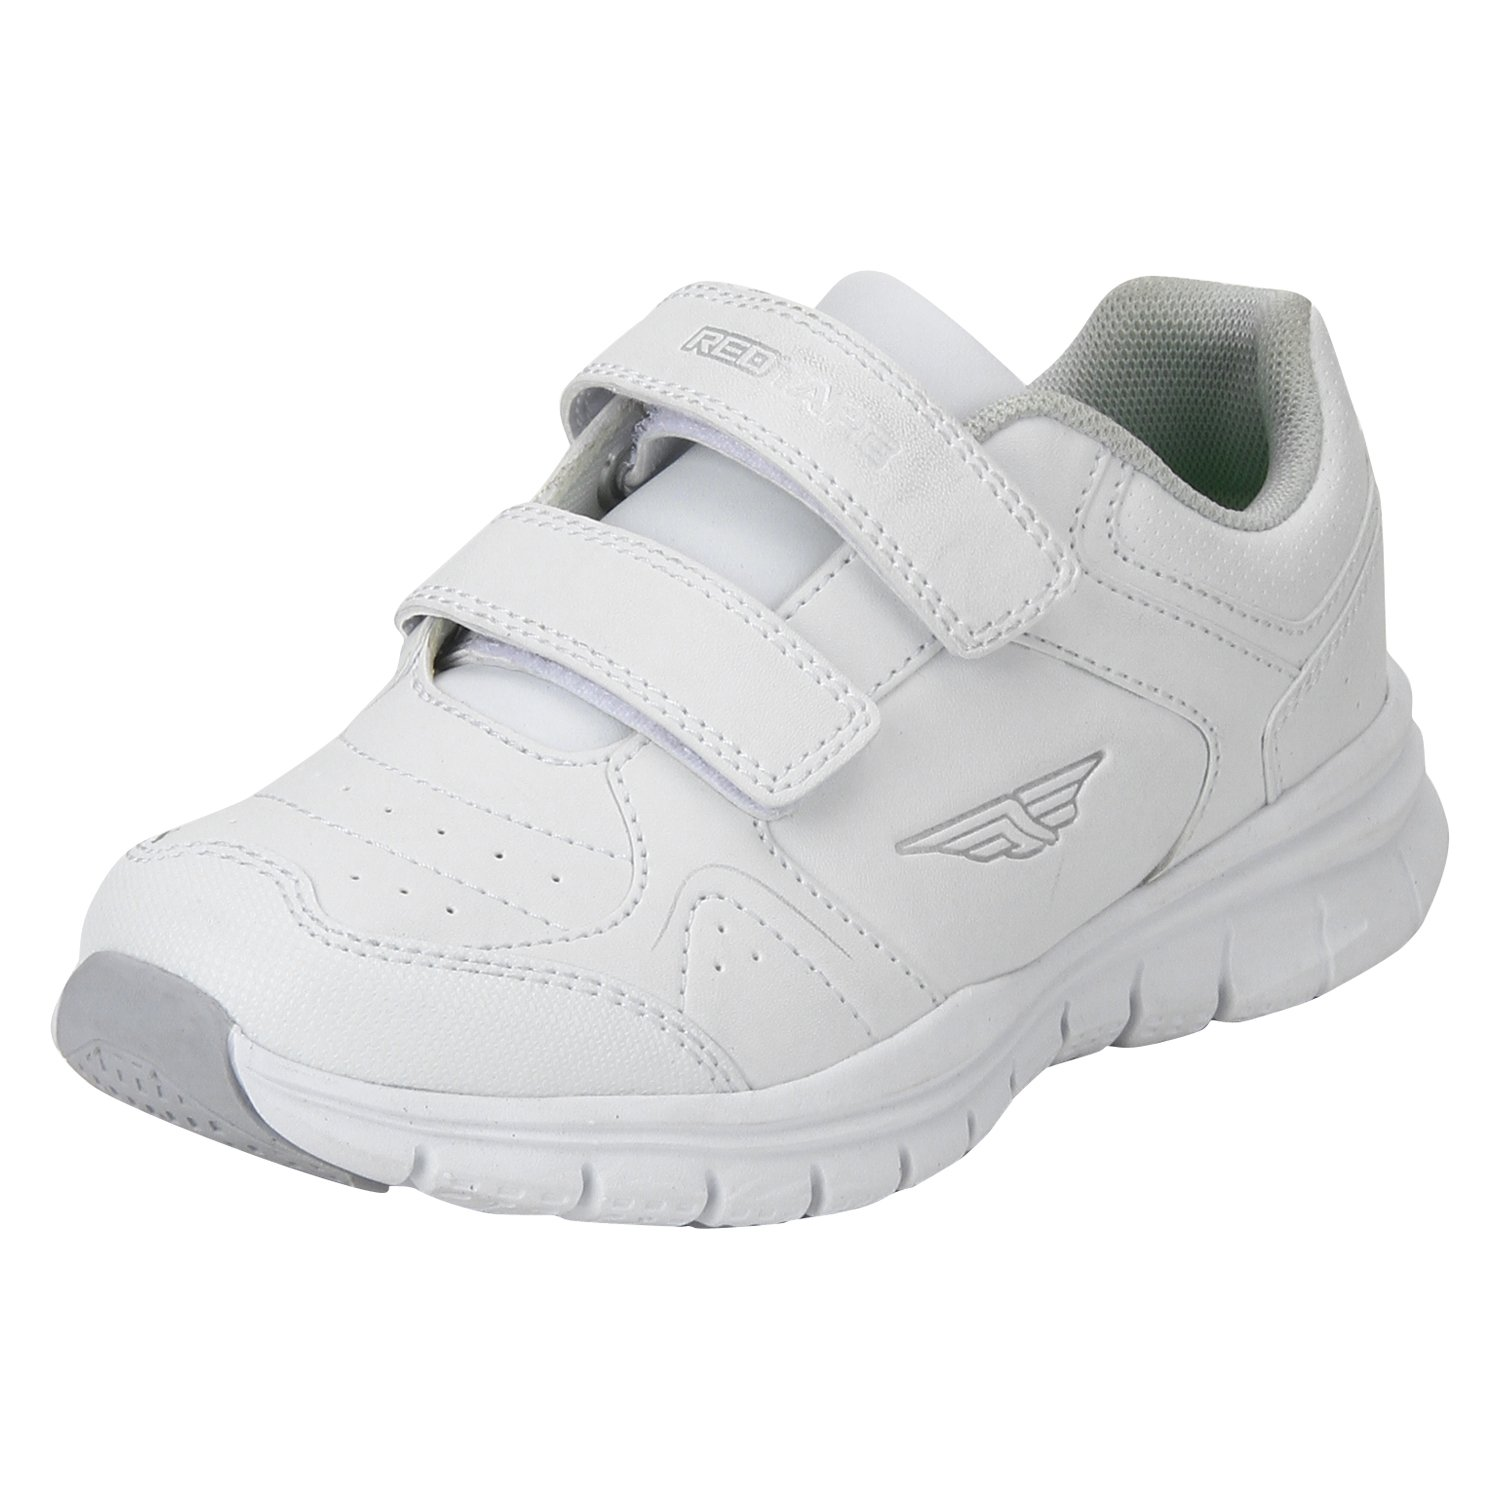 b1f27be4b9527 Red Tape Kids Unisex White School Shoes